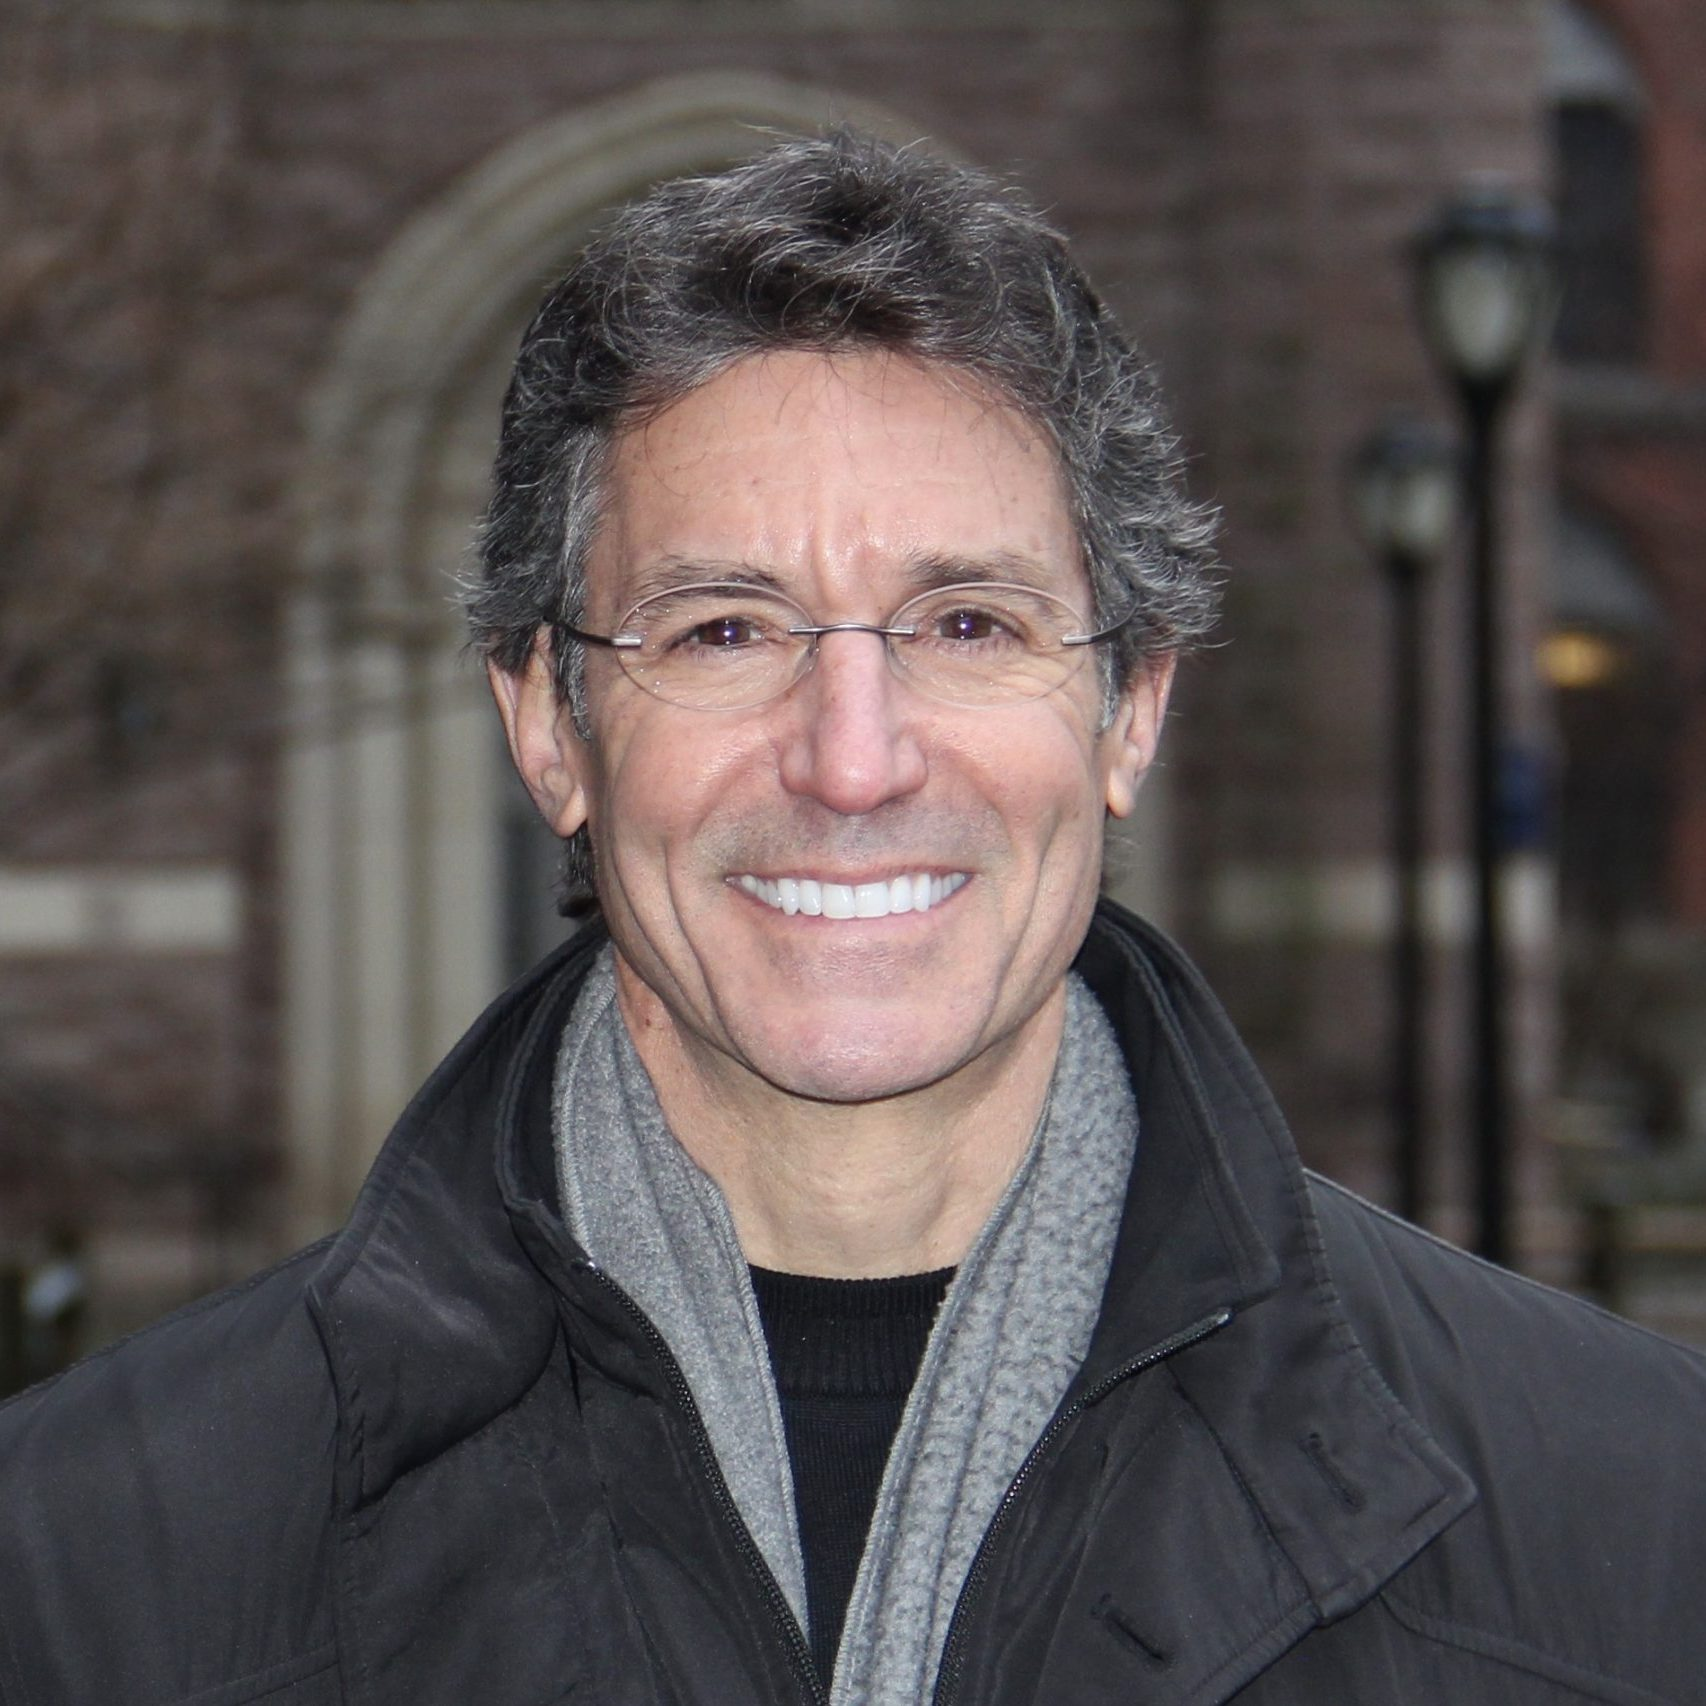 David L Katz MD in winter coat and scarf in front of Yale University building January 2020